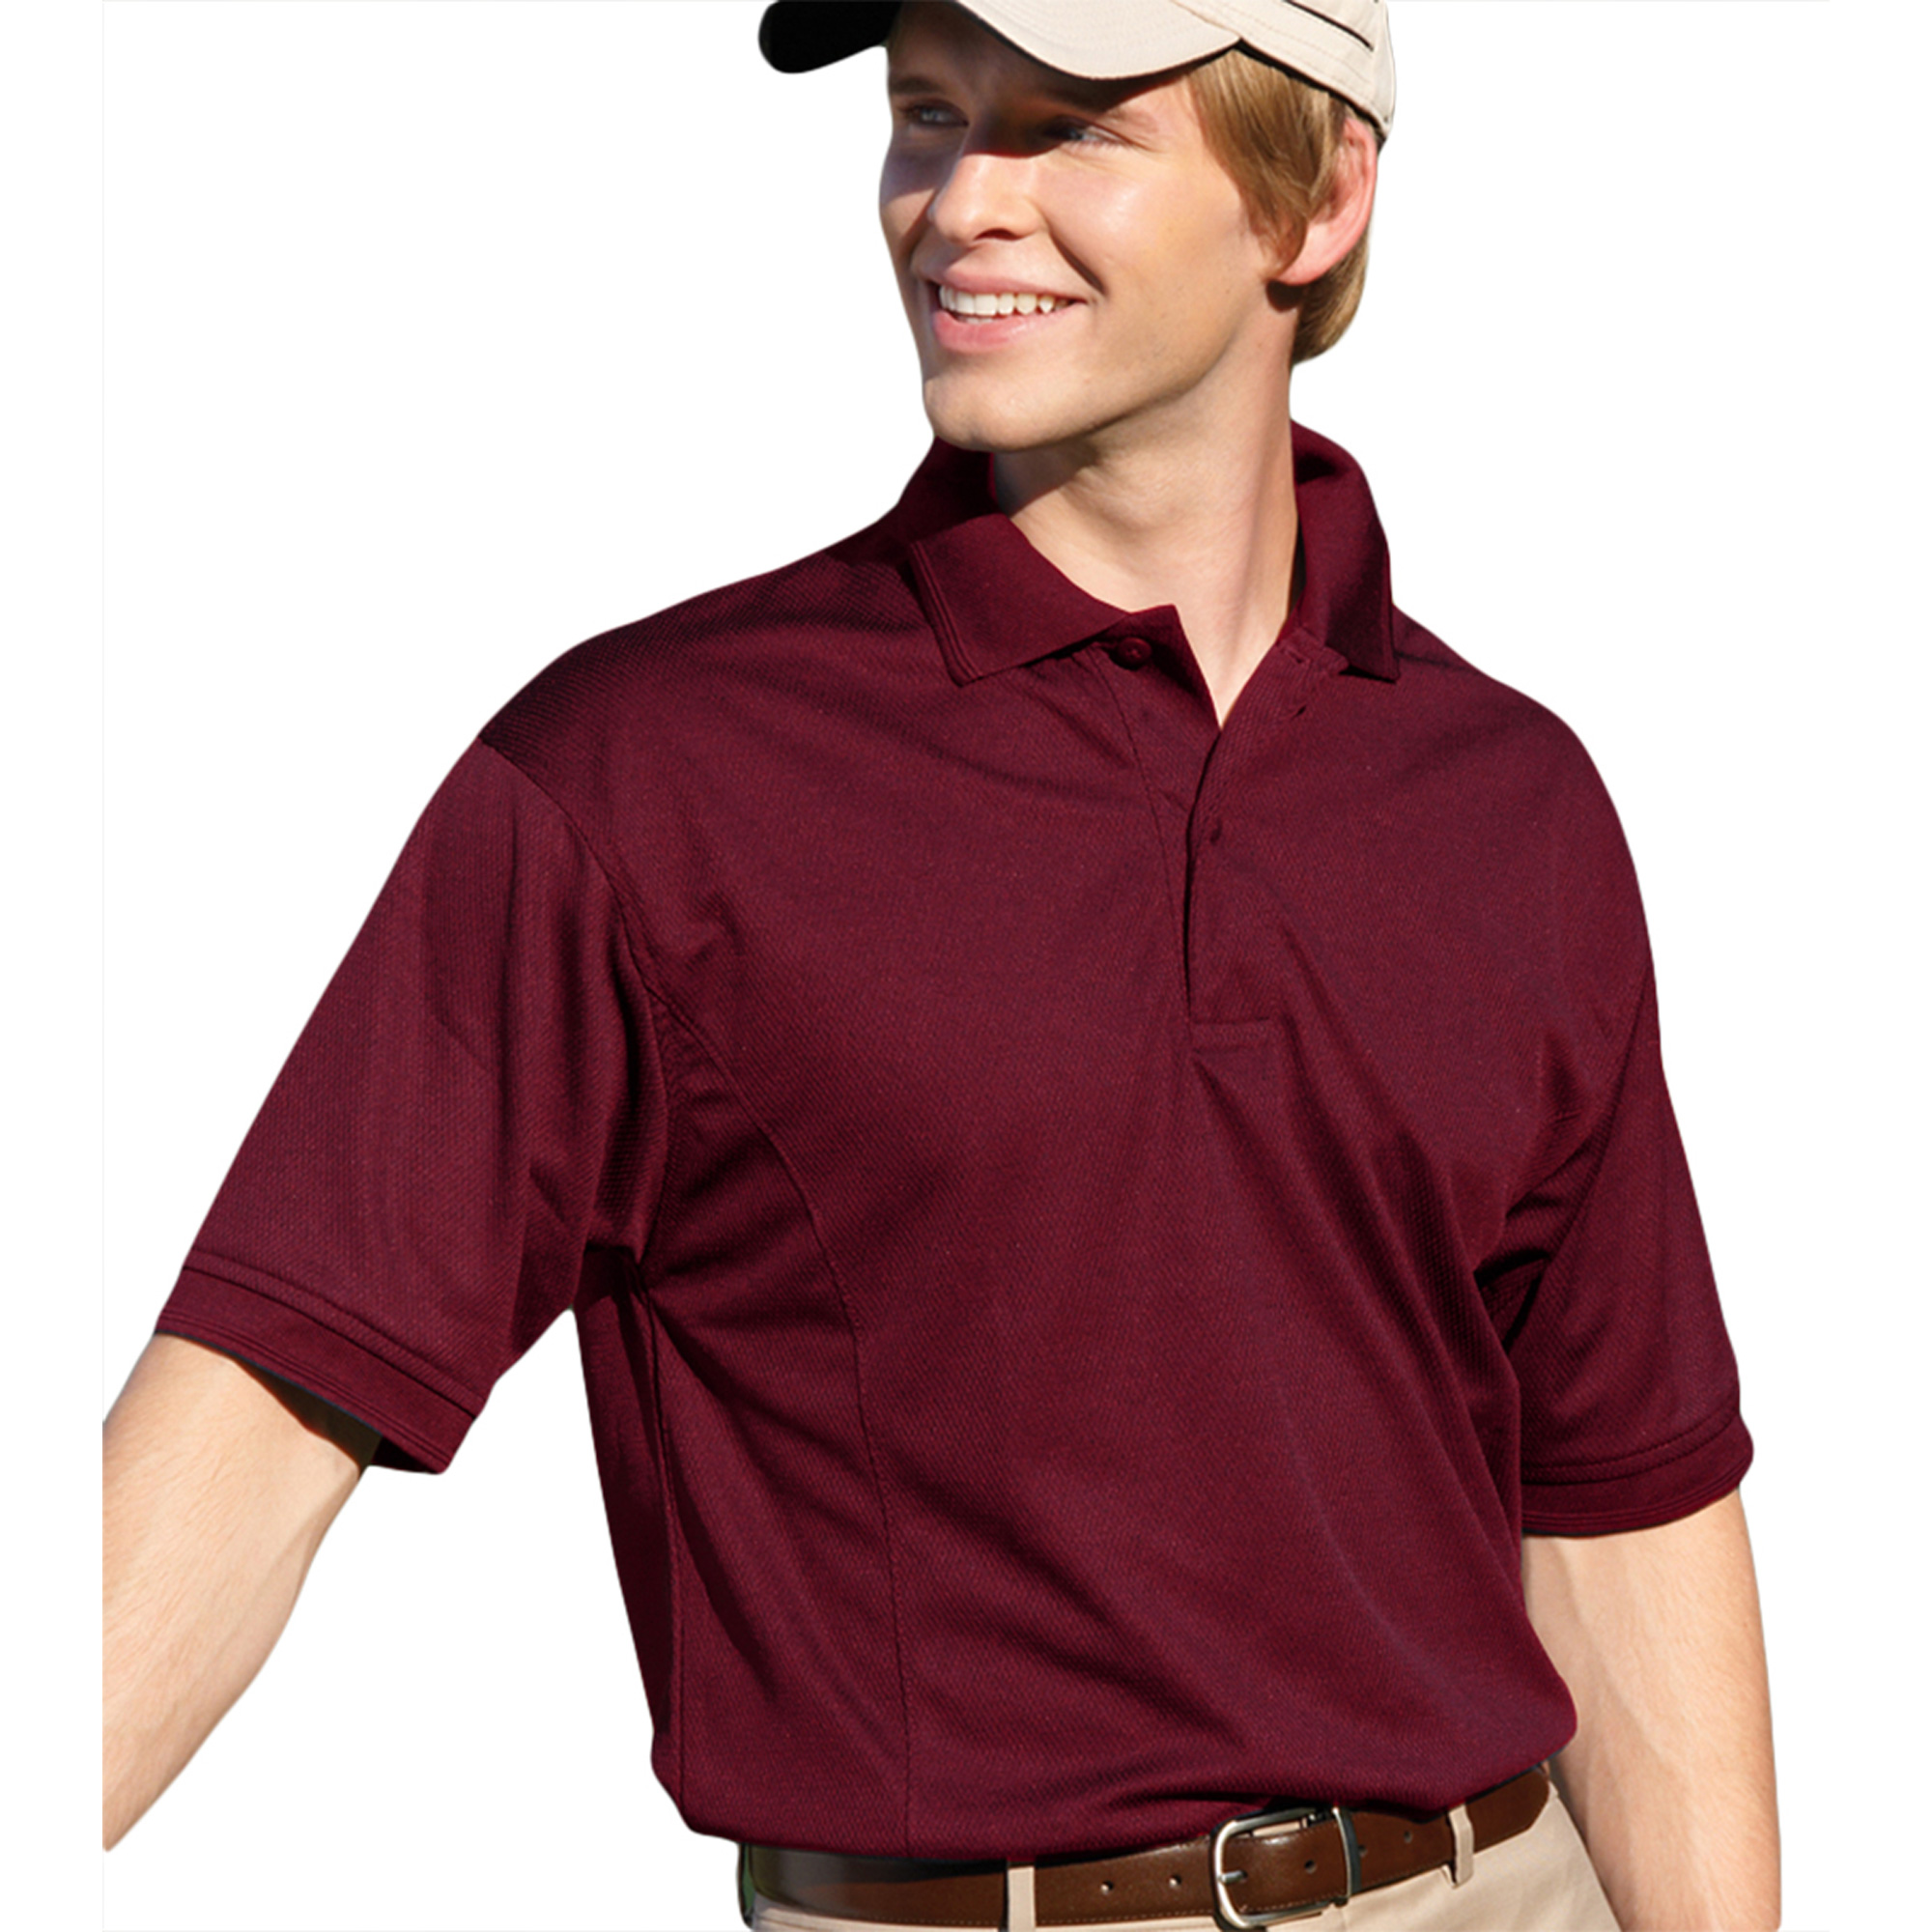 00820599181221 MENS PERFORMANCE GOLF SHIRT 2800 BURGUNDY 4XL